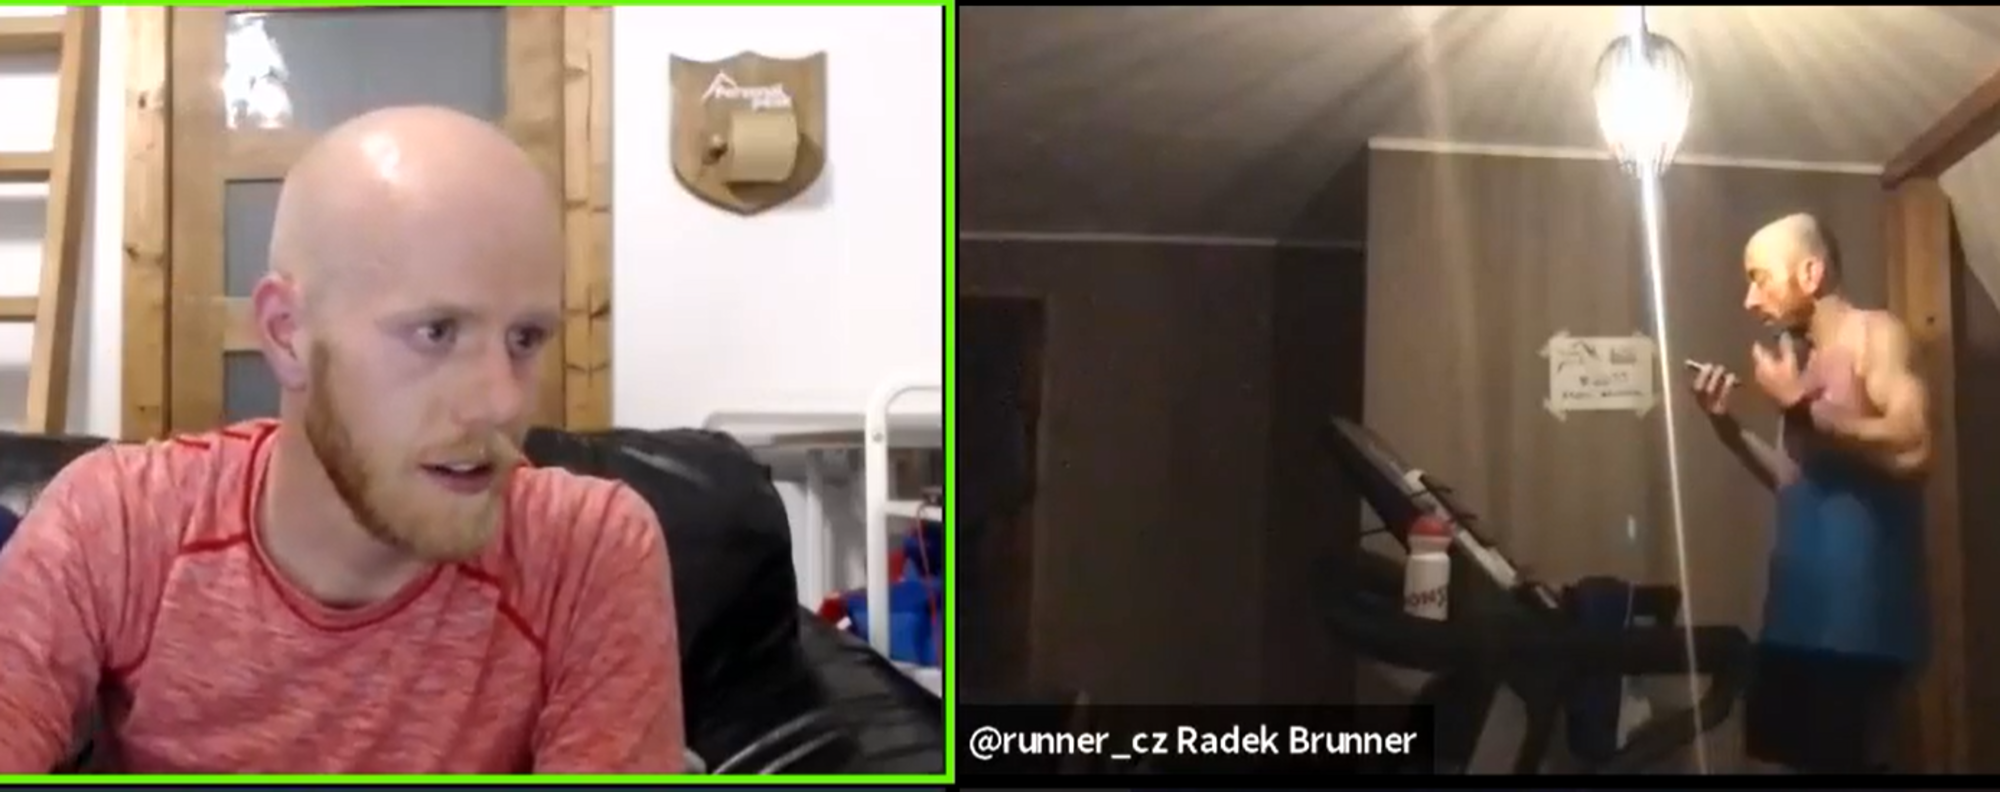 The moment Radek Brunner is told he is disqualified, live on Zoom, after missing the buzzer. Photo: Personal Peak